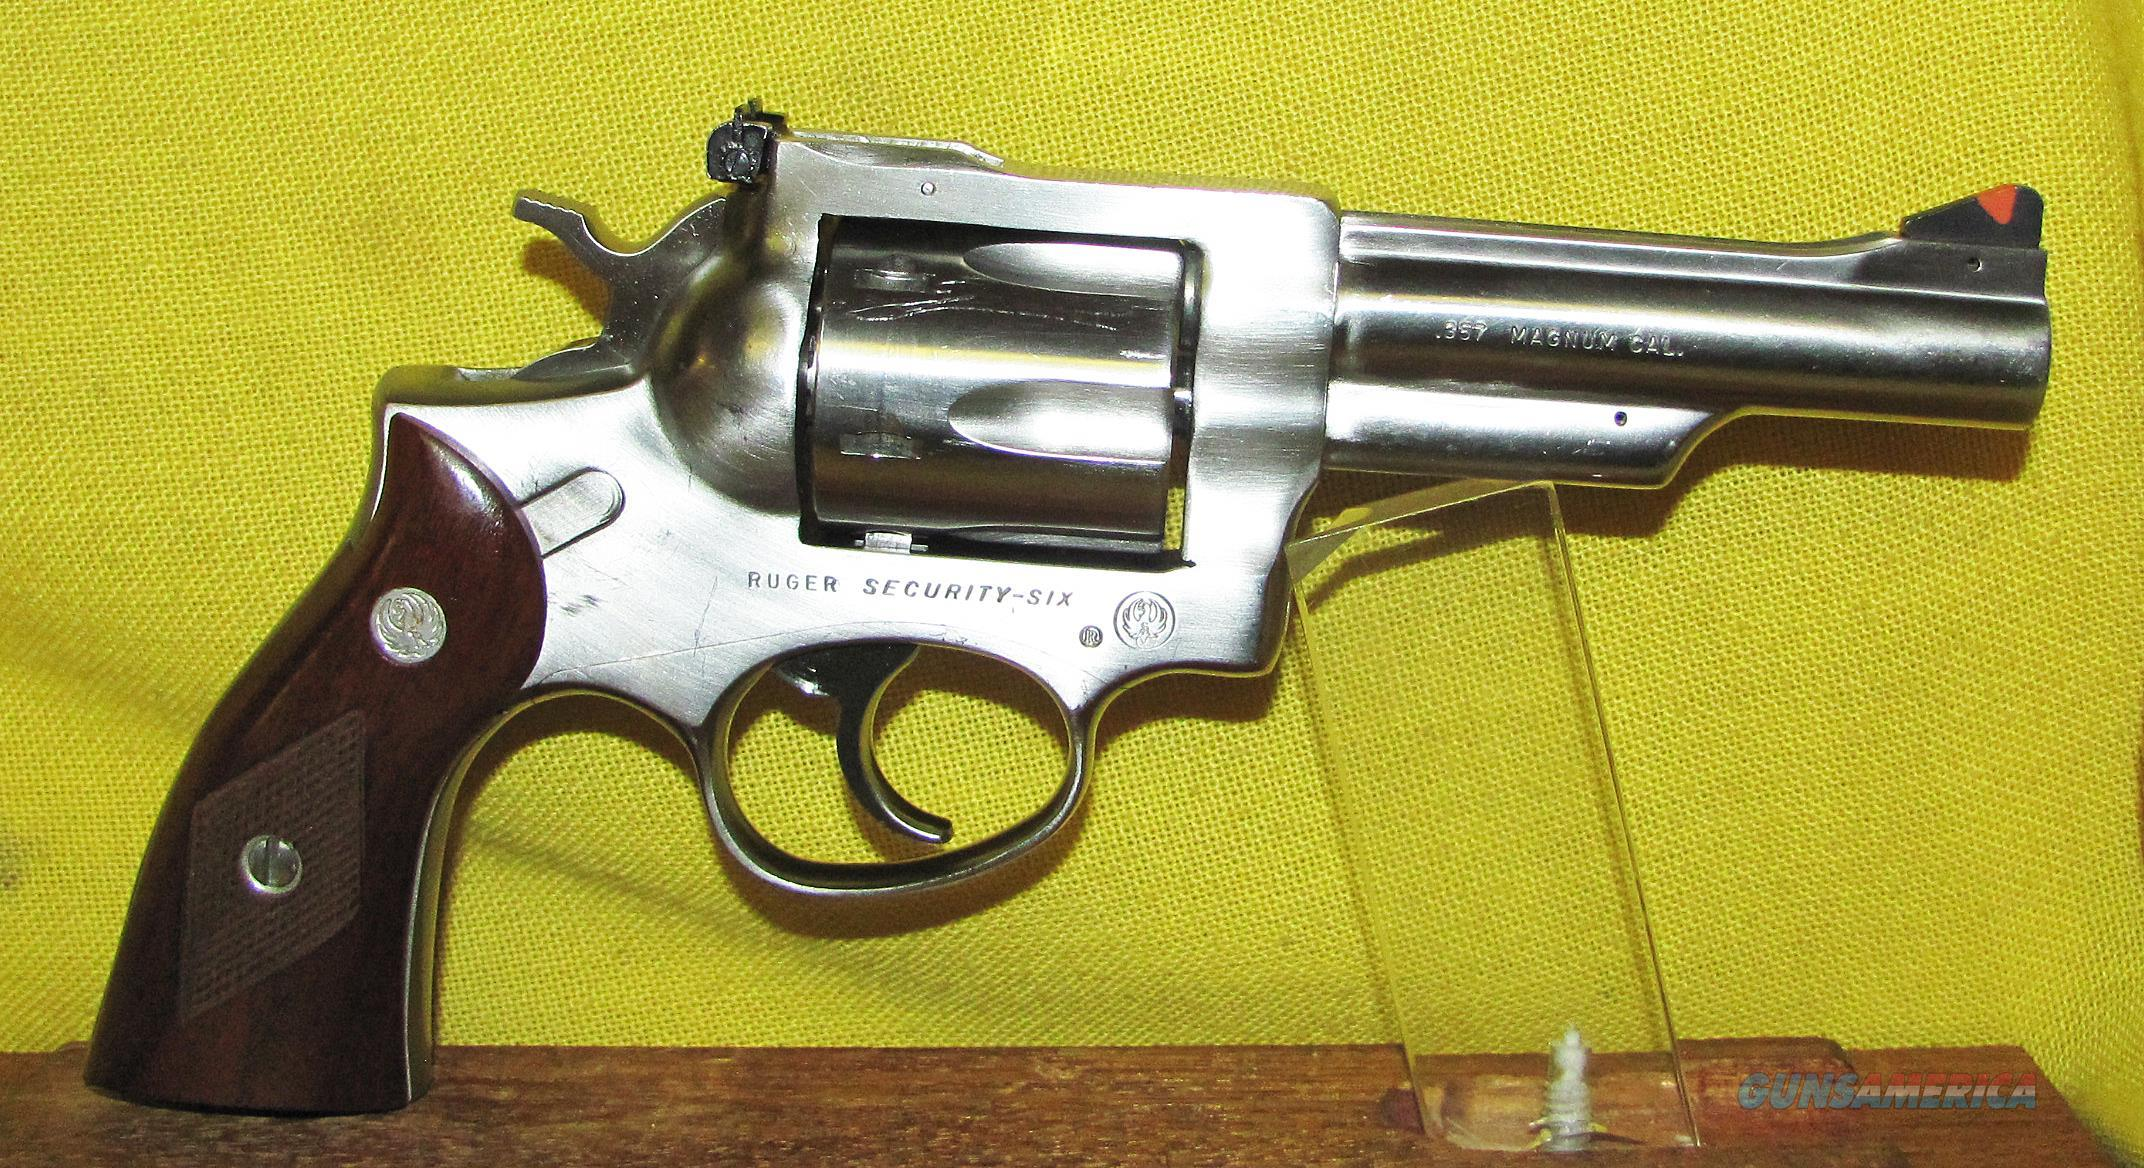 RUGER  SECURITY SIX  Guns > Pistols > Ruger Double Action Revolver > Security Six Type